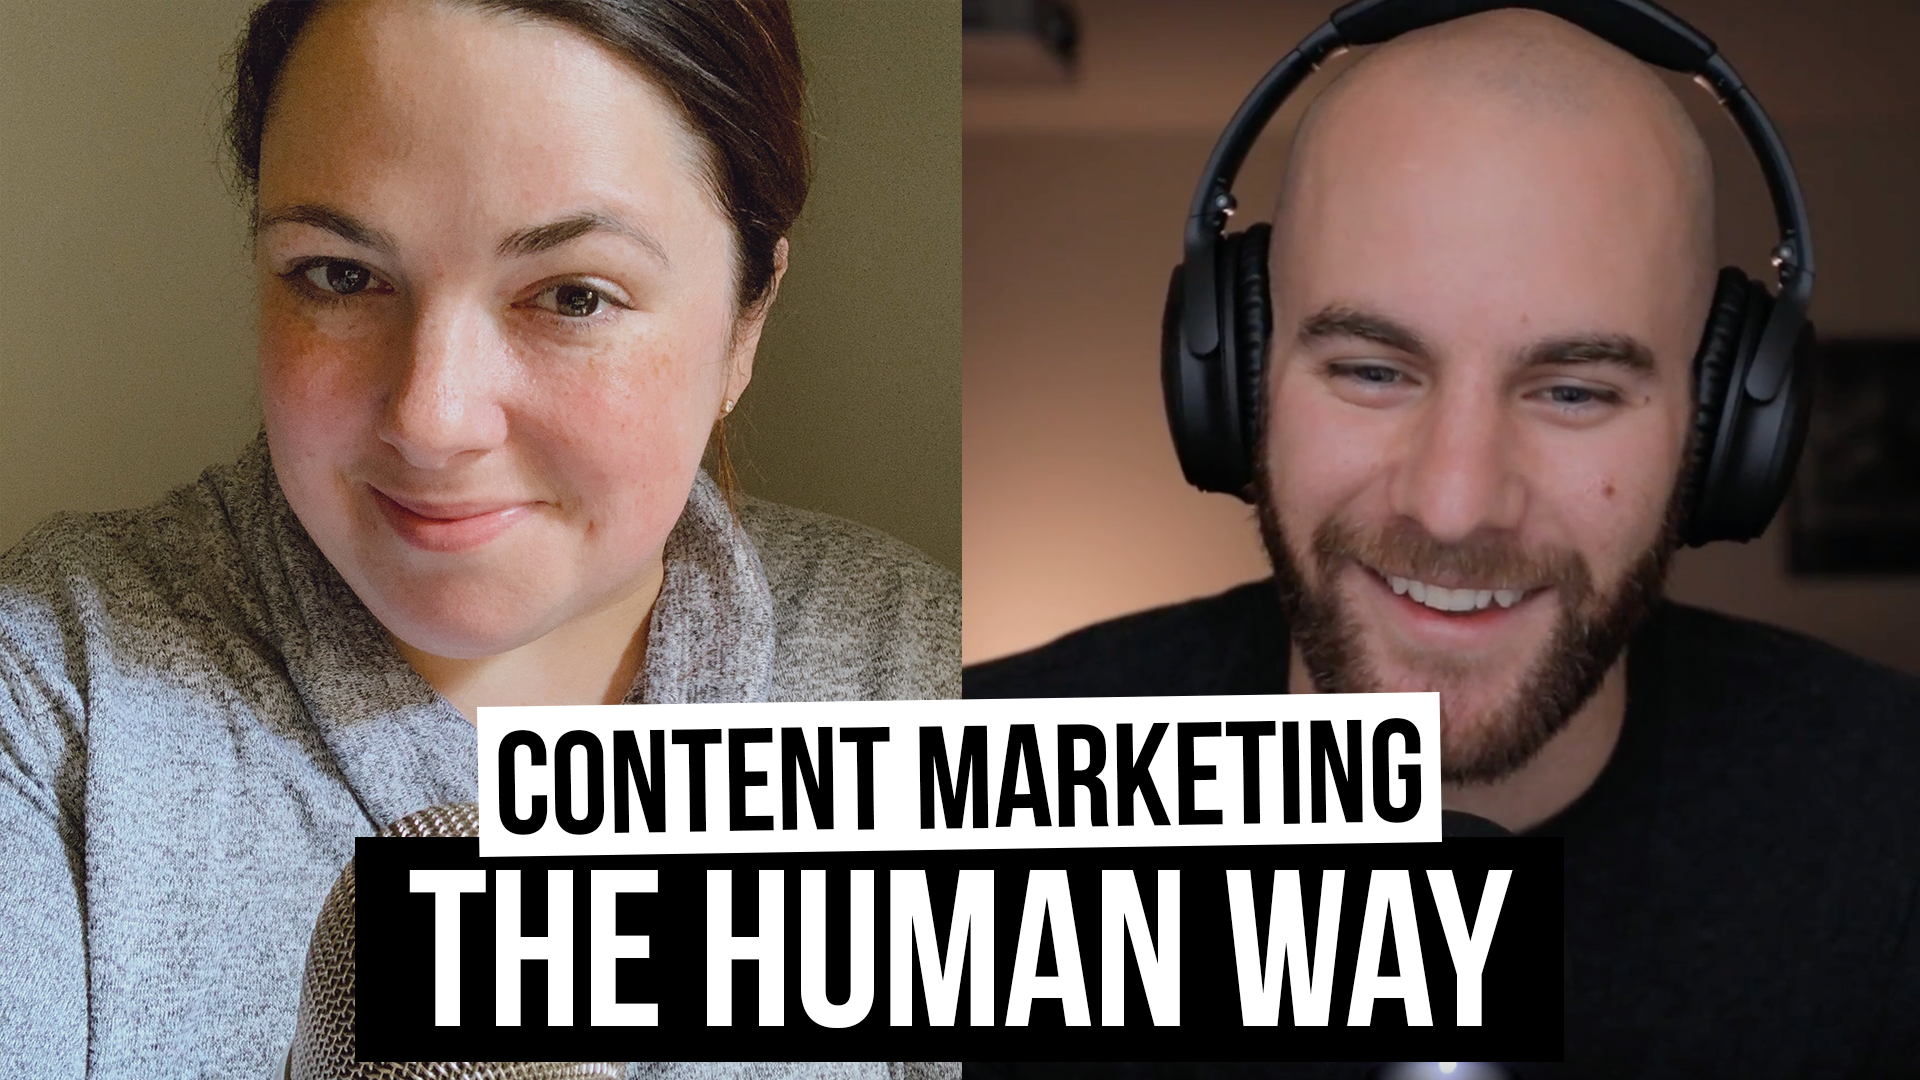 Content Marketing the Human Way [Film School For Marketers Podcast, Ep. 24]